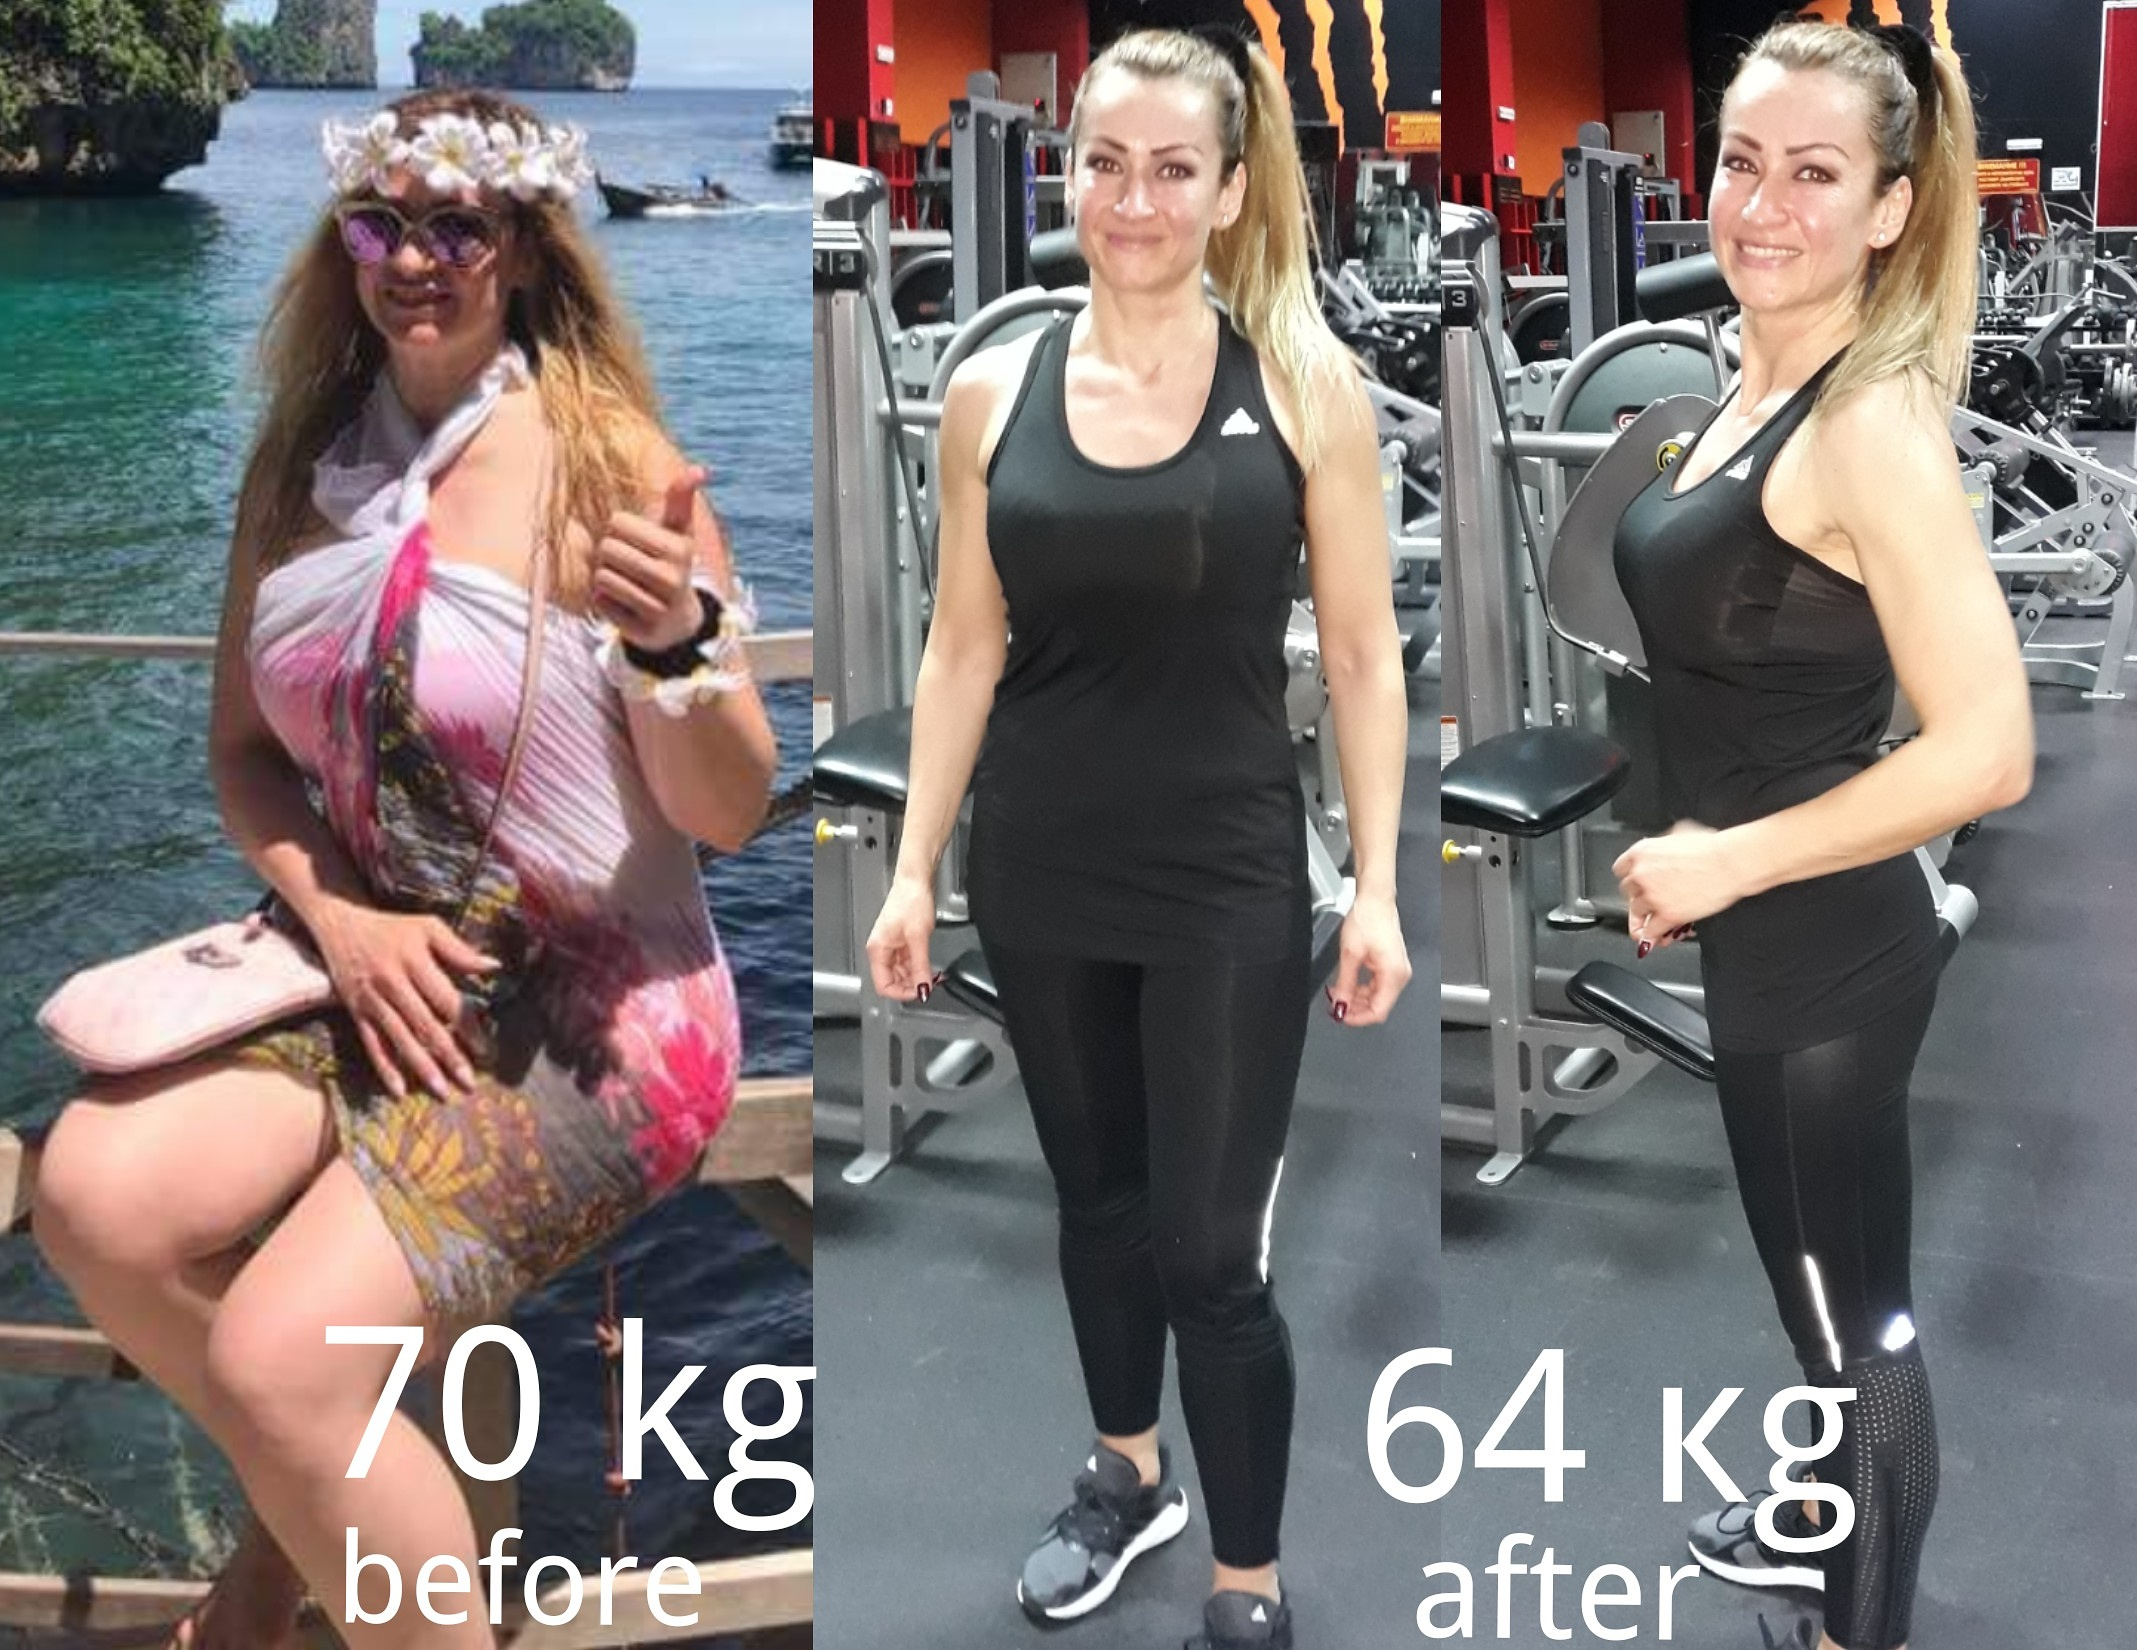 Vanss Fitness Ivan Ivanov Vanss Fitness Vashiyat Lichen Trenor Get tips for staying healthy and fit over the age of 50, which can sometimes be difficult, especially for women. vanss fitness ivan ivanov vanss